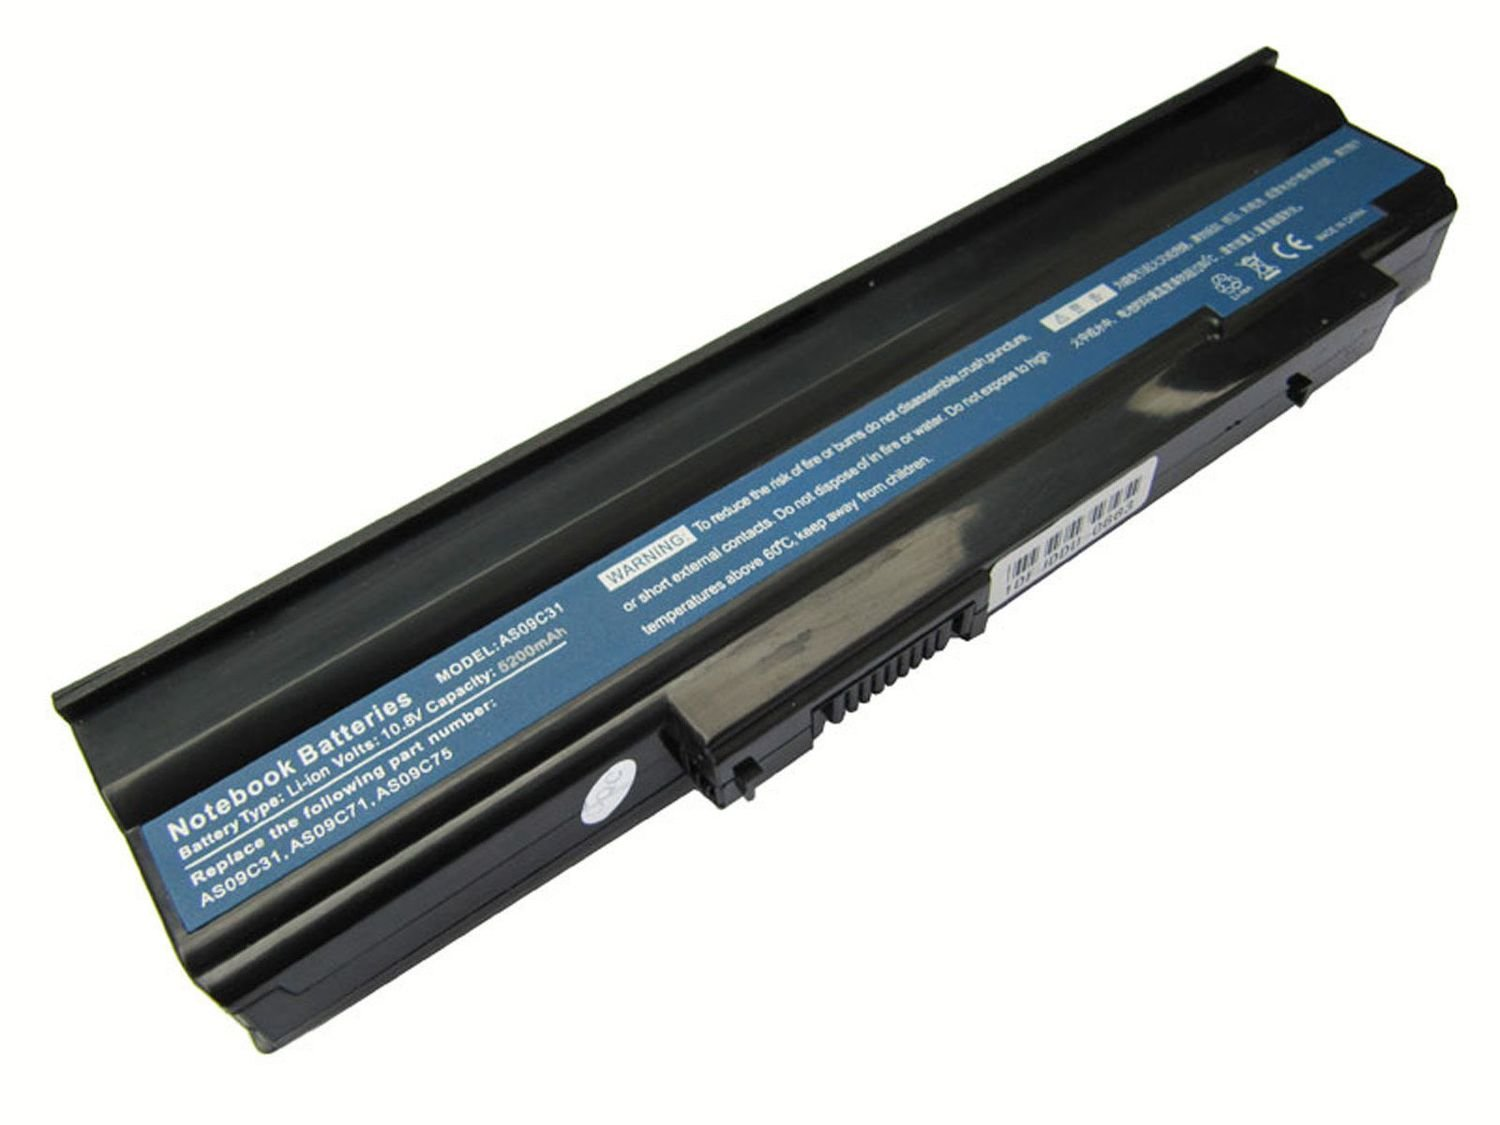 Acer Extensa E728 635ZG-443G25MN compatible laptop battery